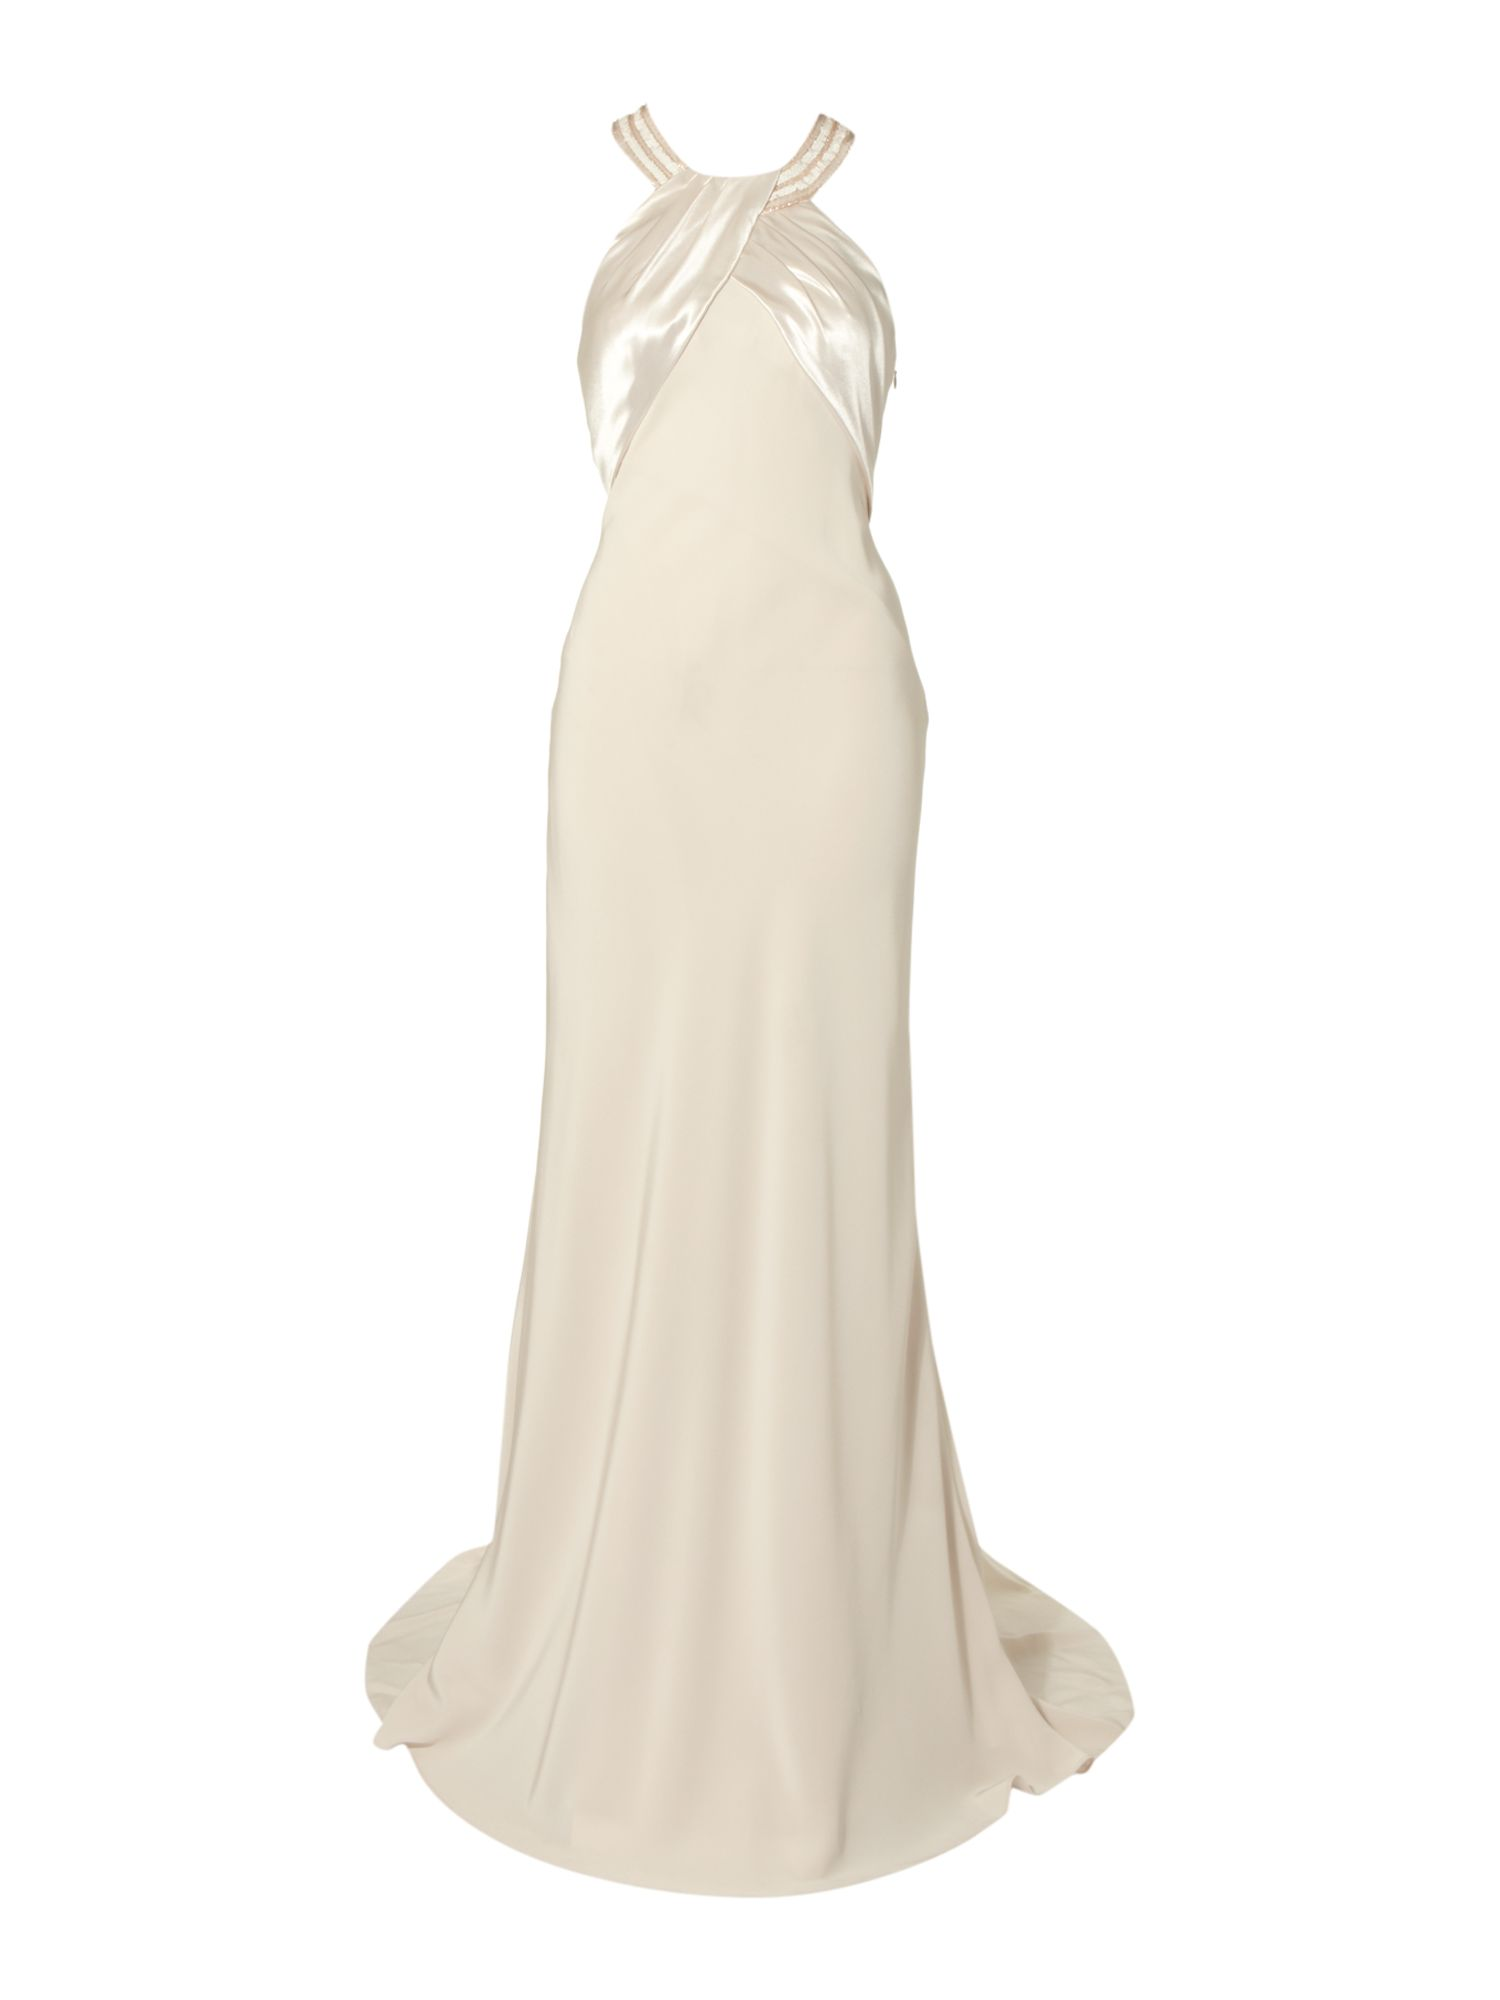 Women's Biba Amber beaded back halter bridal gown, Ivory